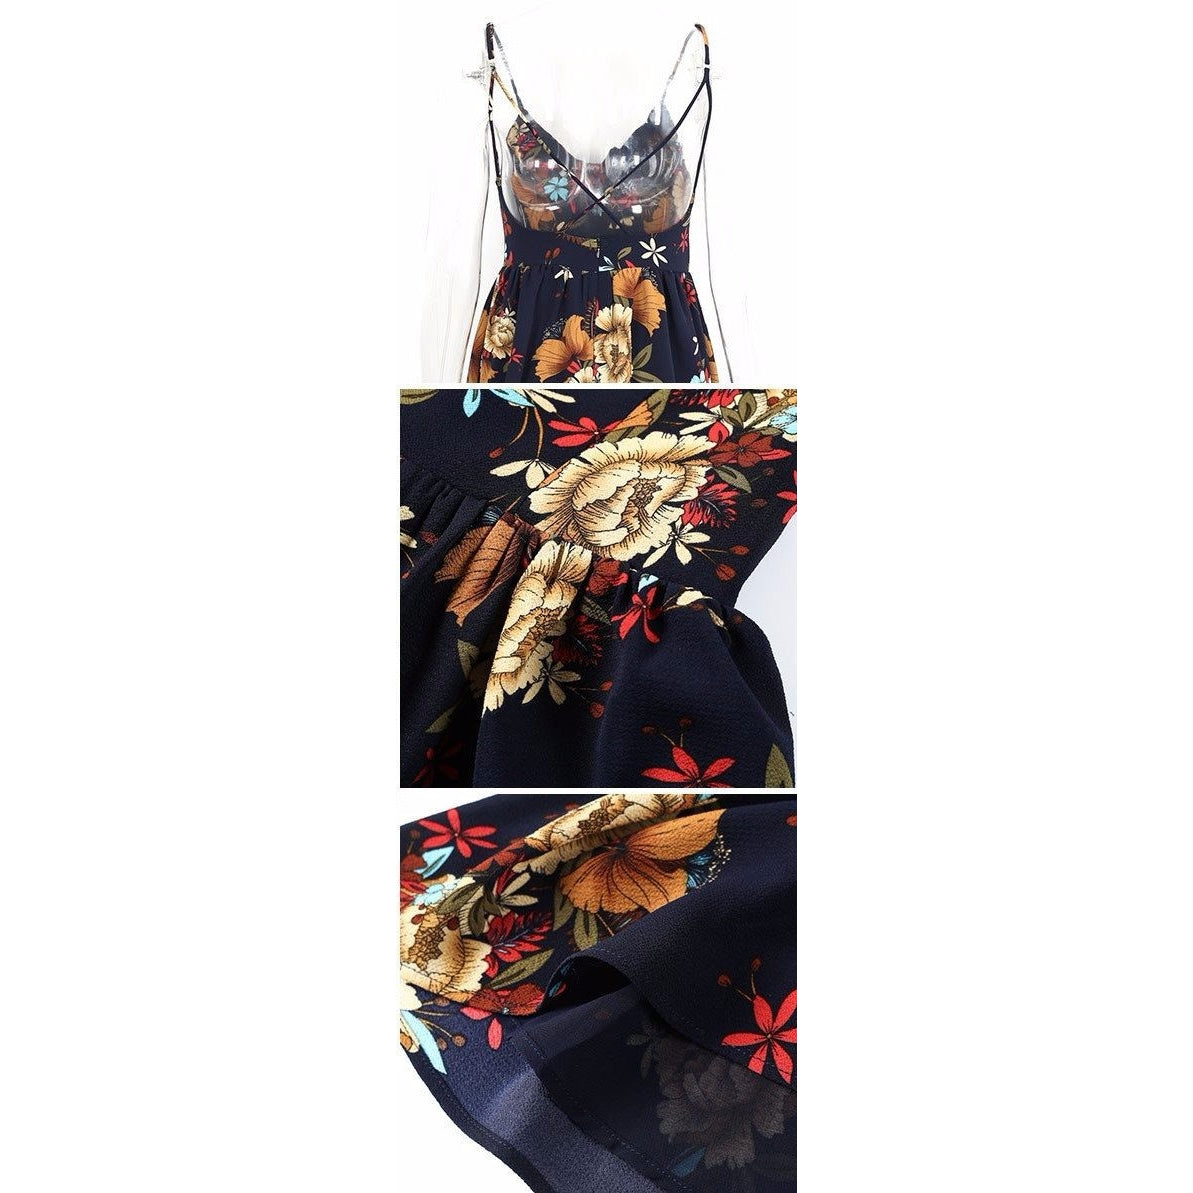 The Adeline Romper is a beautiful floral playsuit with spaghetti straps that cross in the back and a sweet sundress style design.